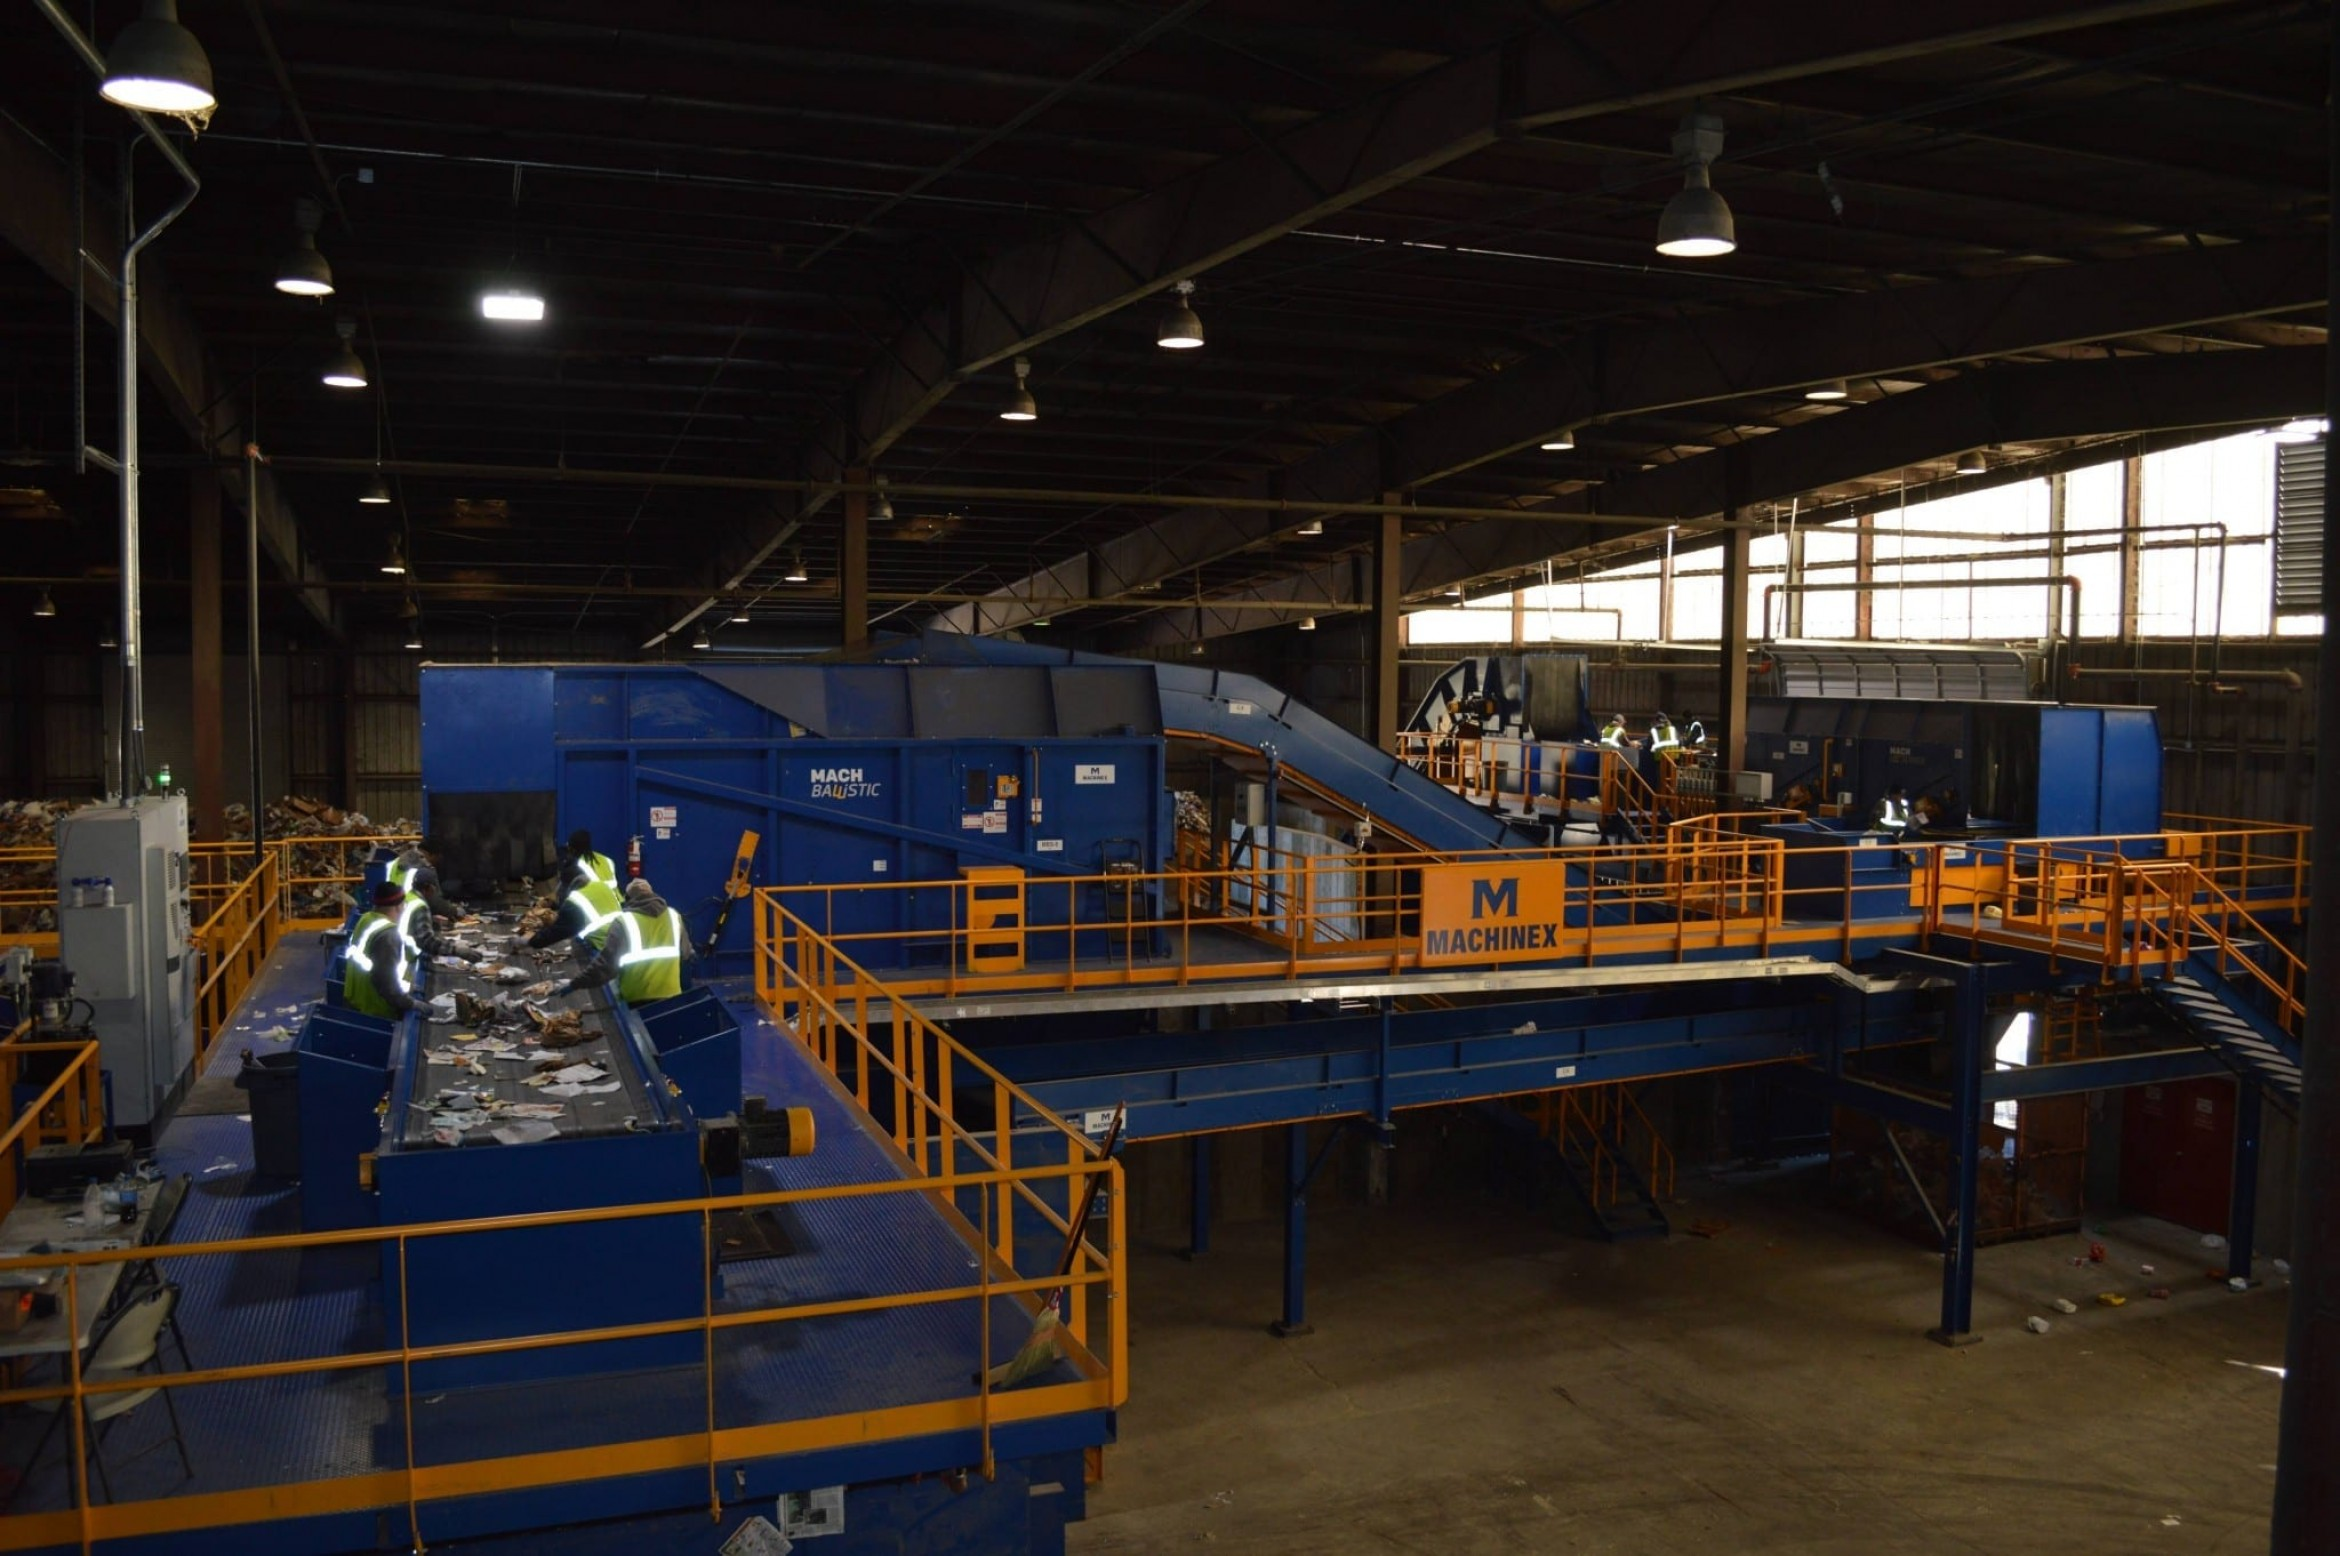 Wide view of Machinex sorting equipment in a factory